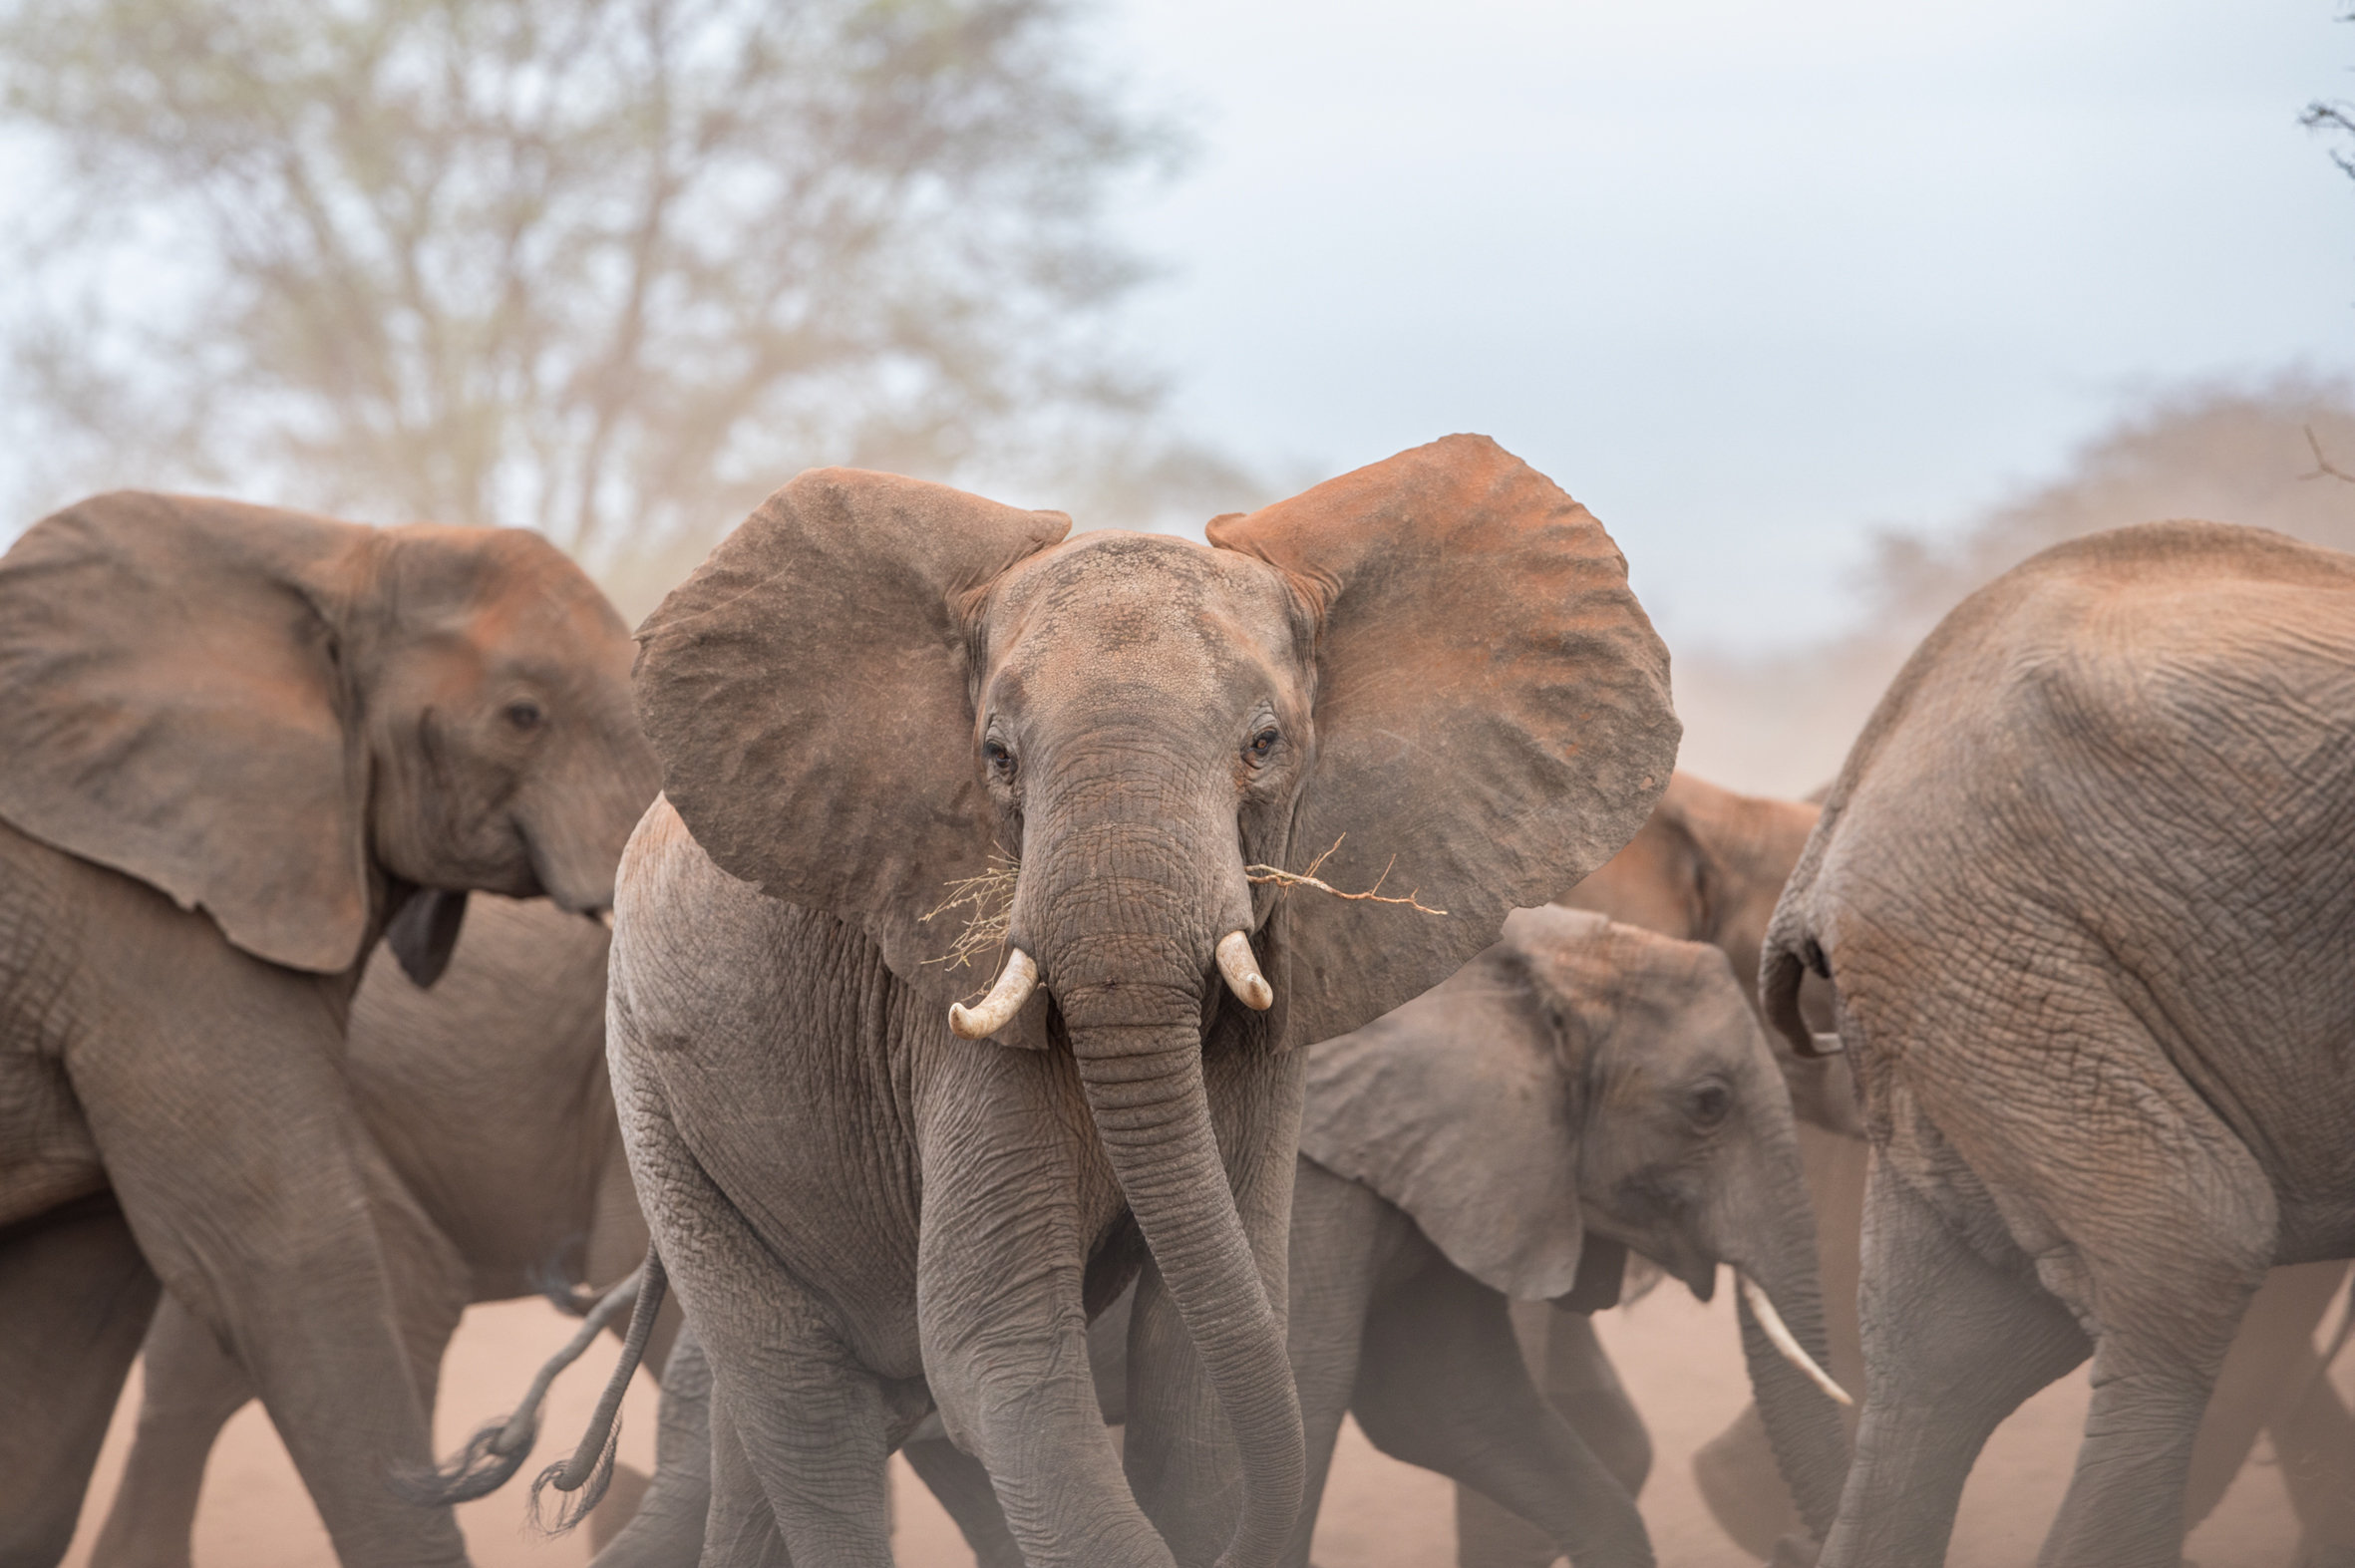 Around 20,000 African elephants are killed by poachers each year